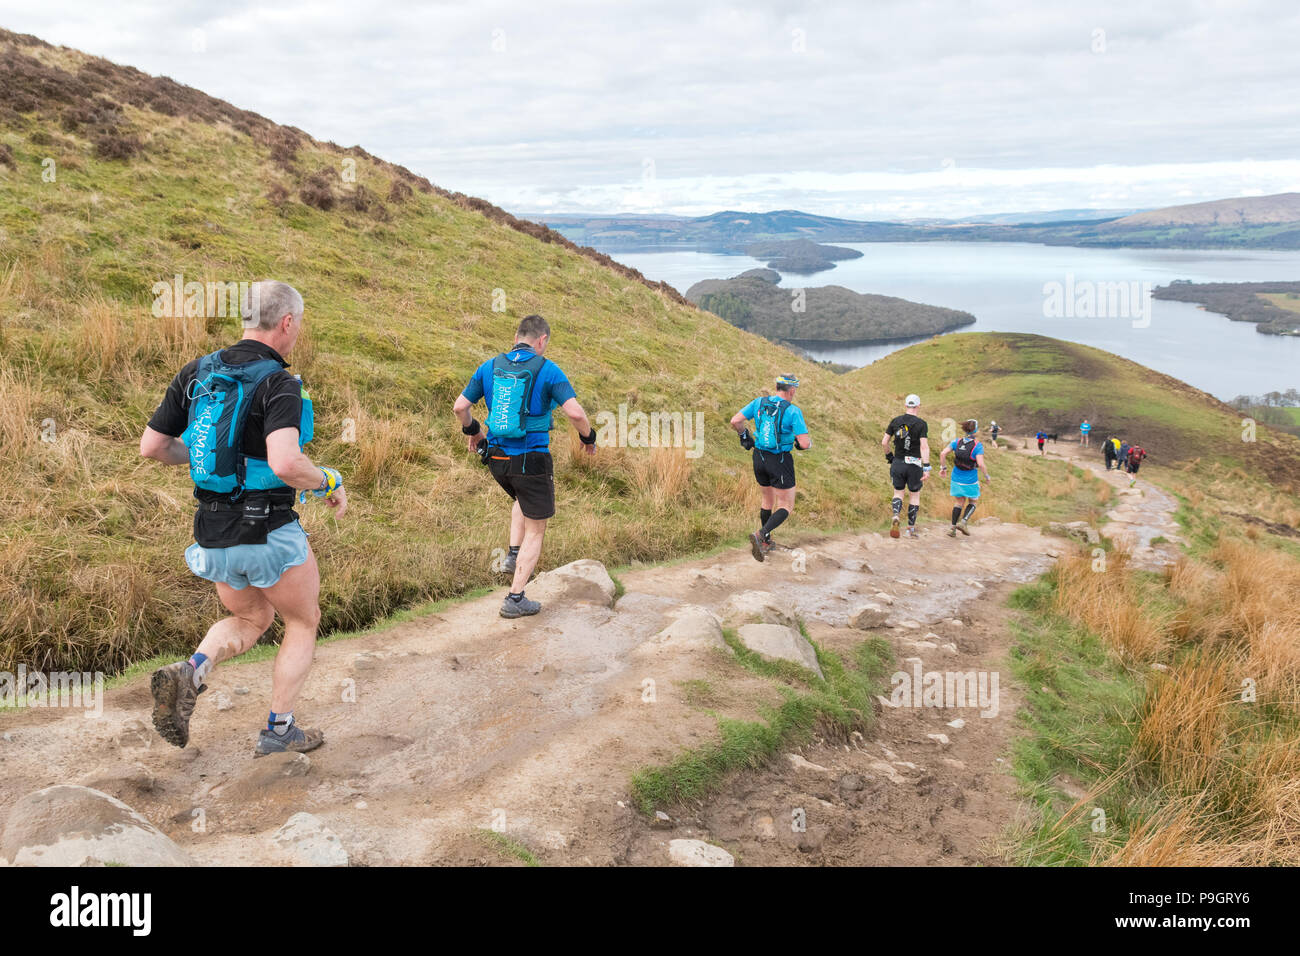 Trail runners descending off Conic Hill in Loch Lomond and Trossachs National Park in the Highland Fling 53 mile Ultra Trail Marathon 2018 - Stock Image